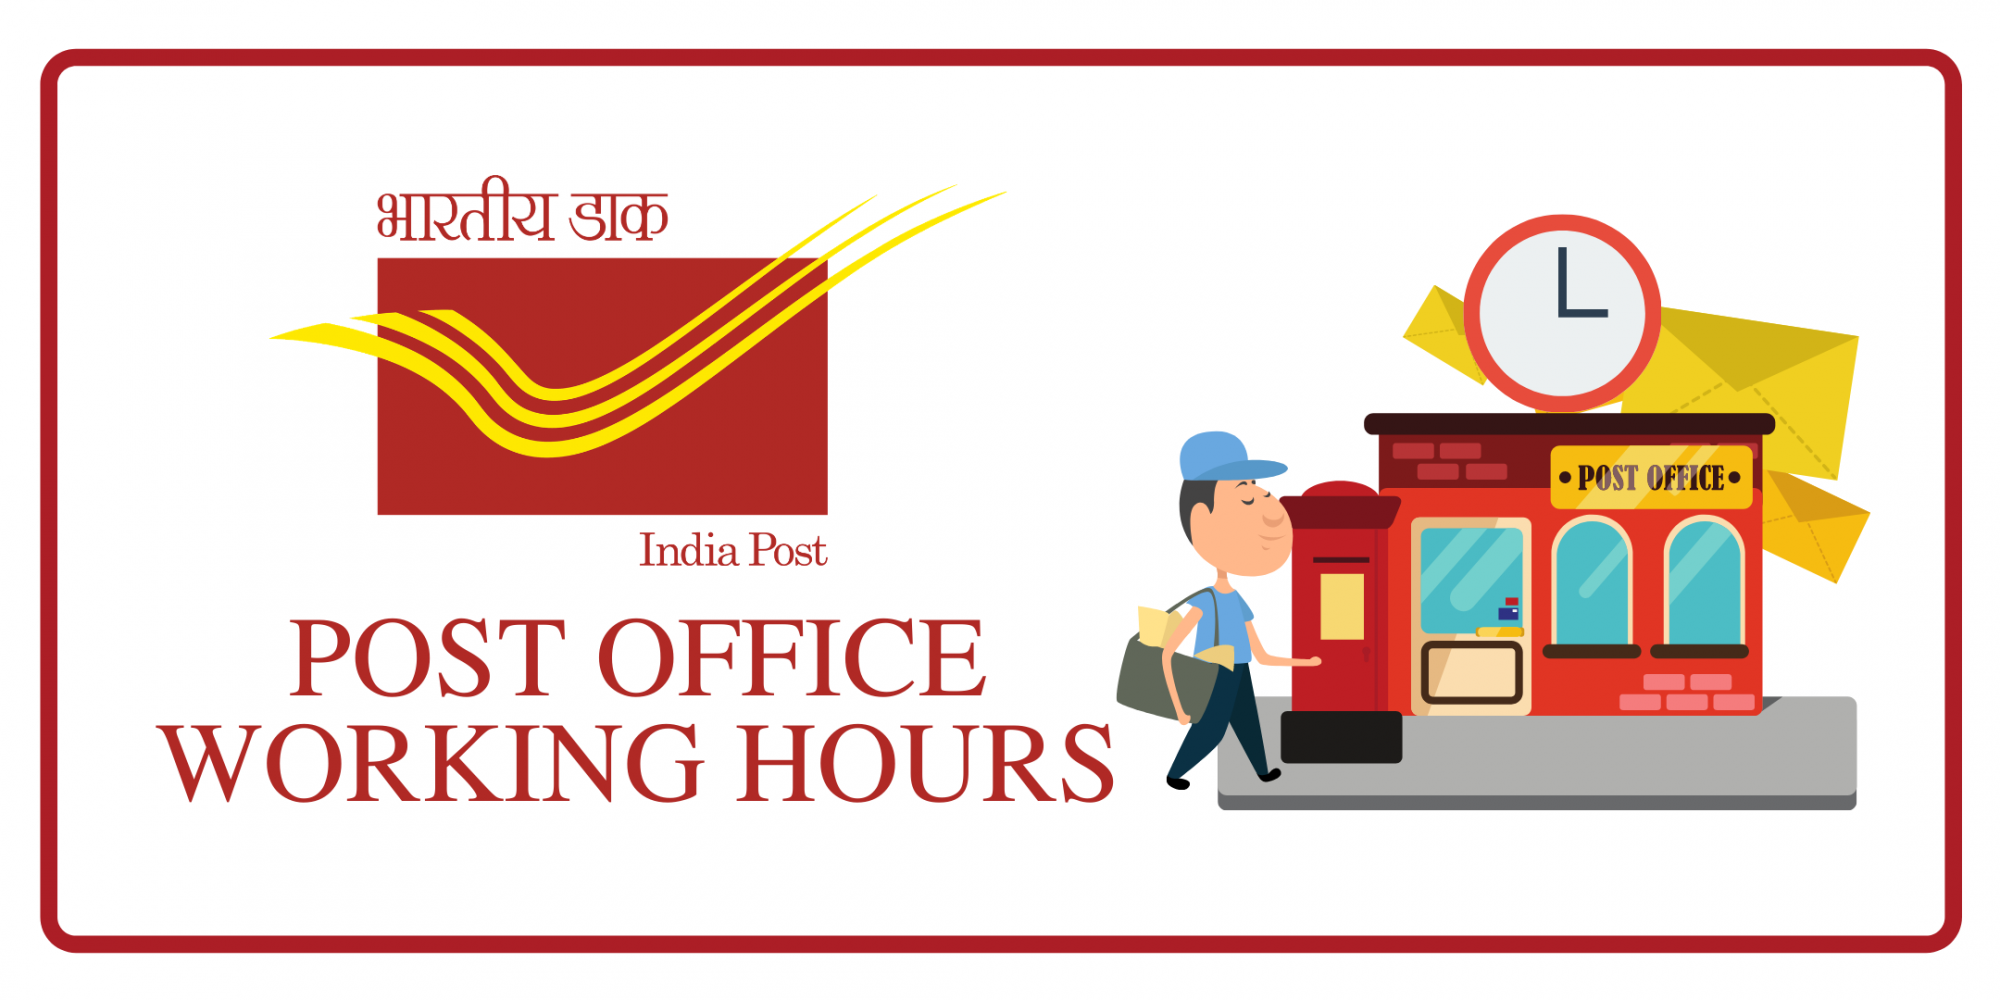 Post Office Working Hours